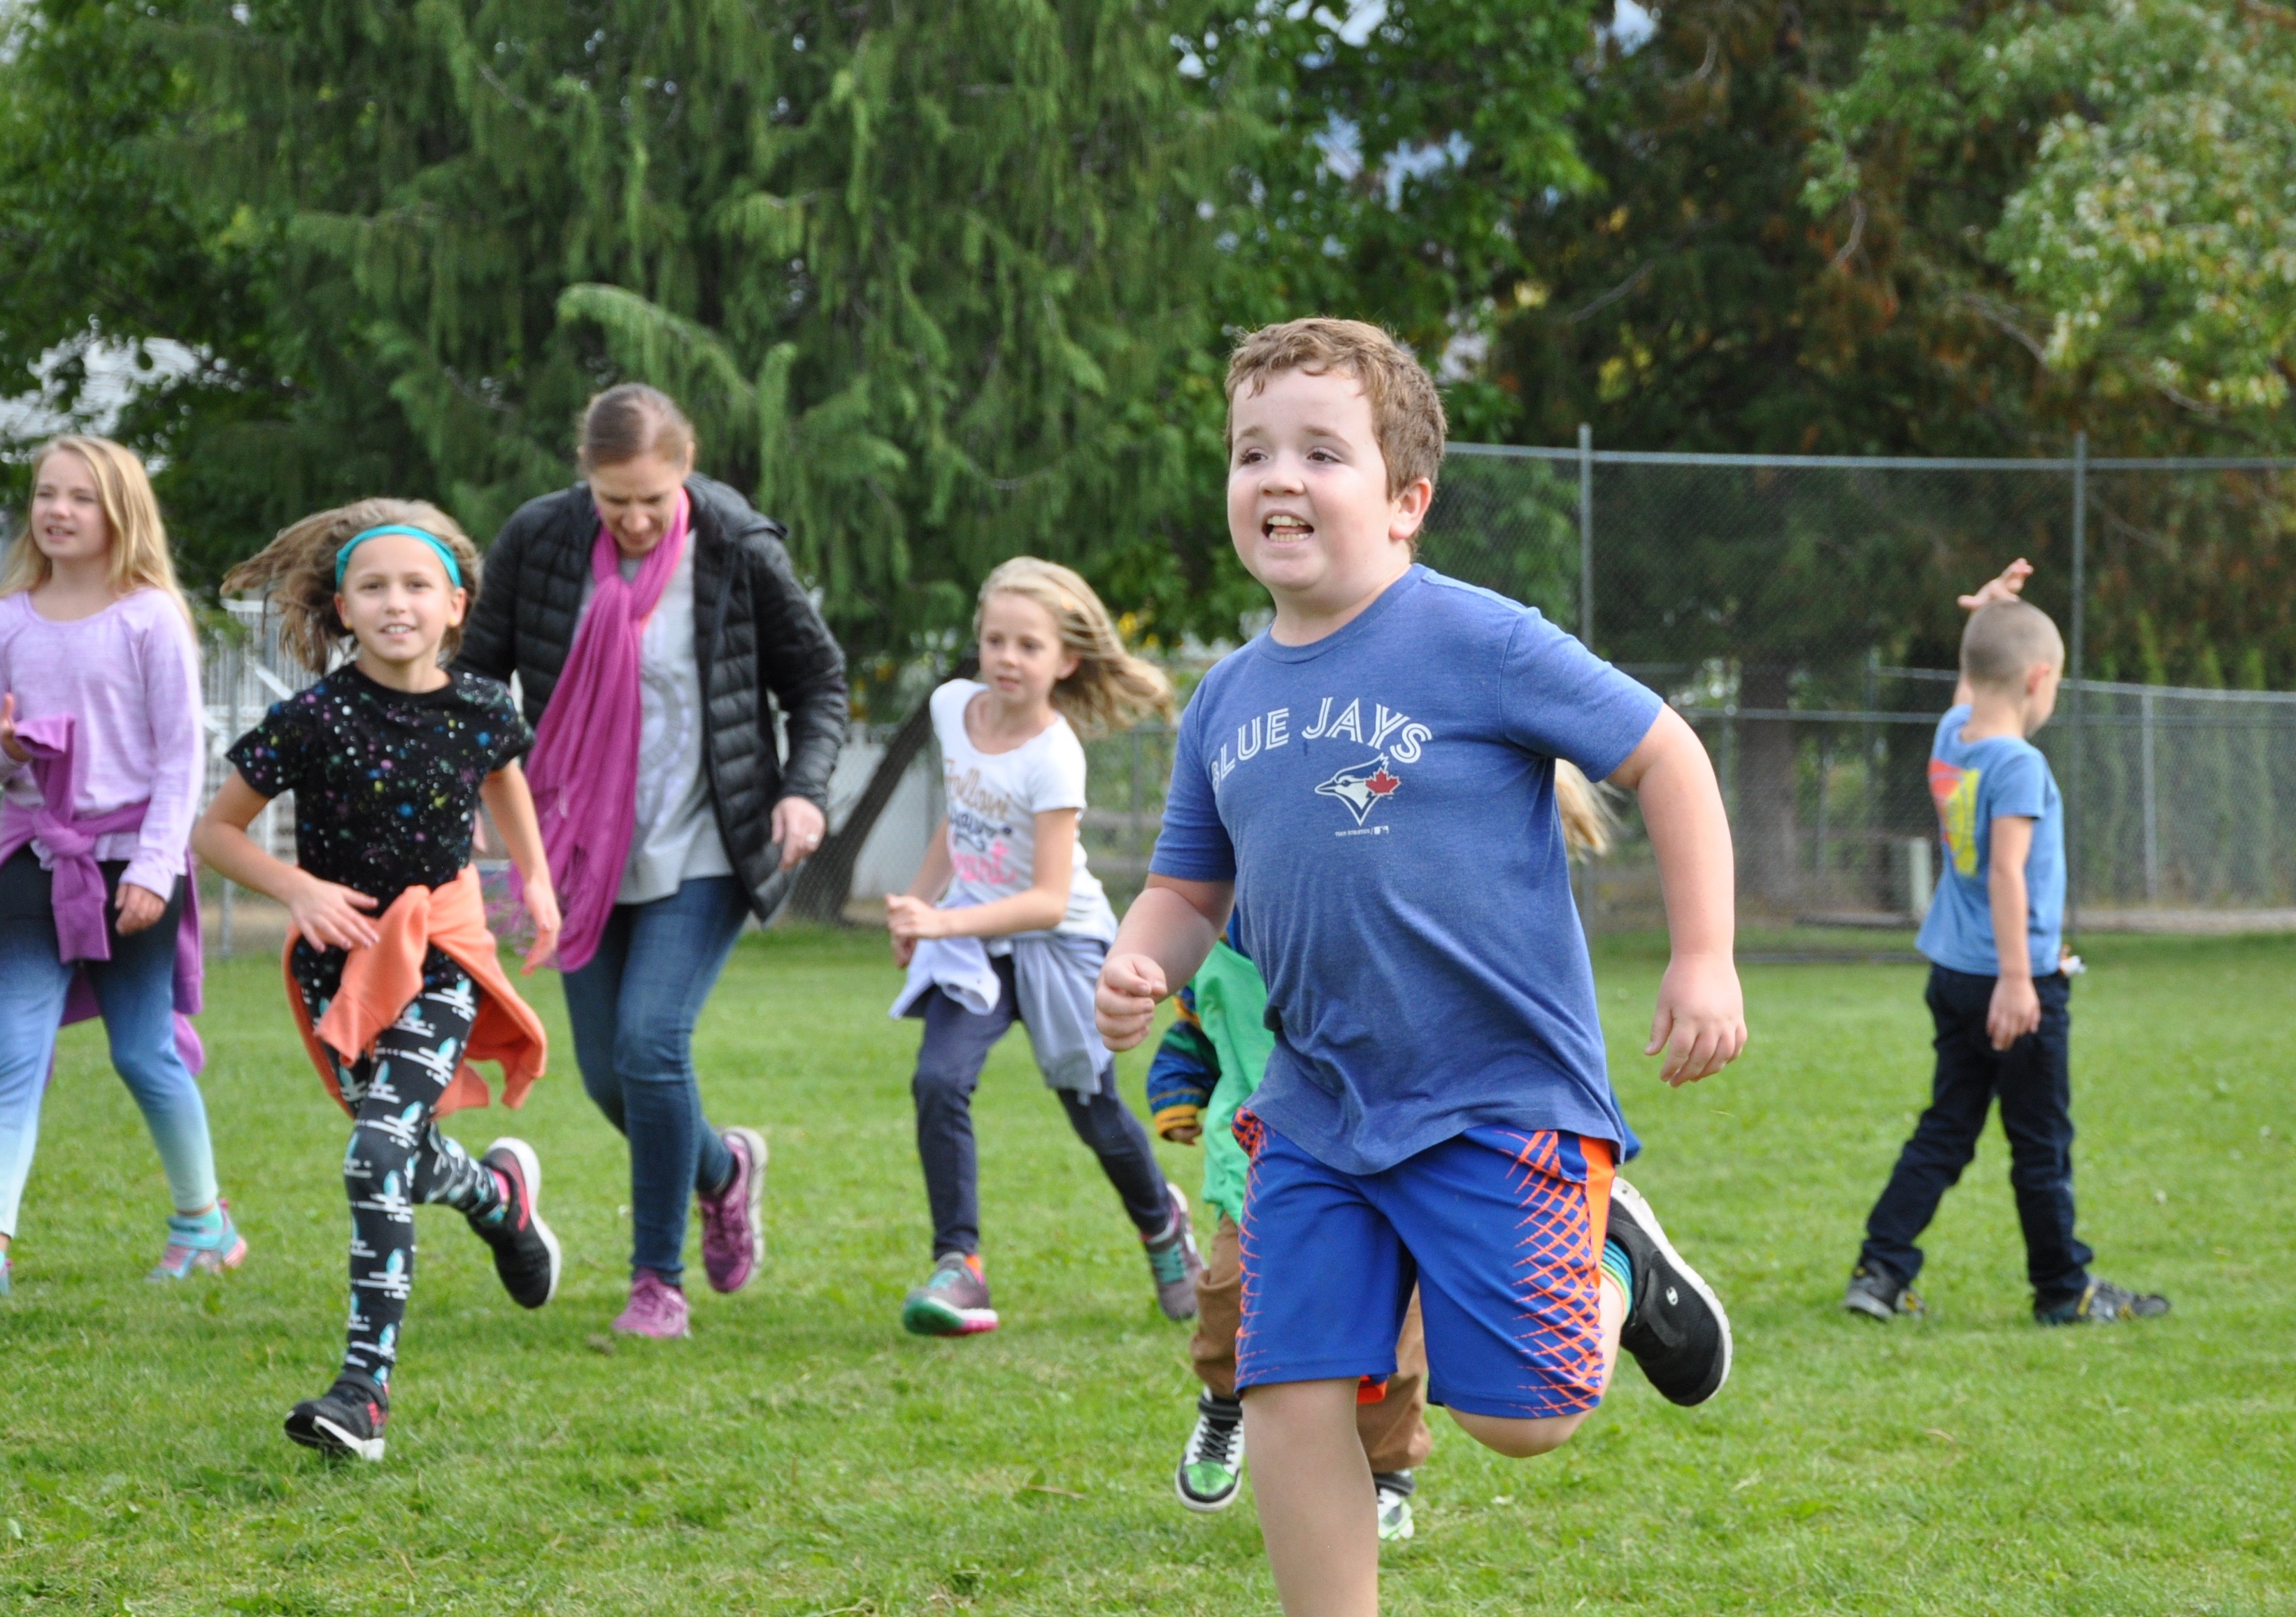 Terry Fox Run & Fundraiser